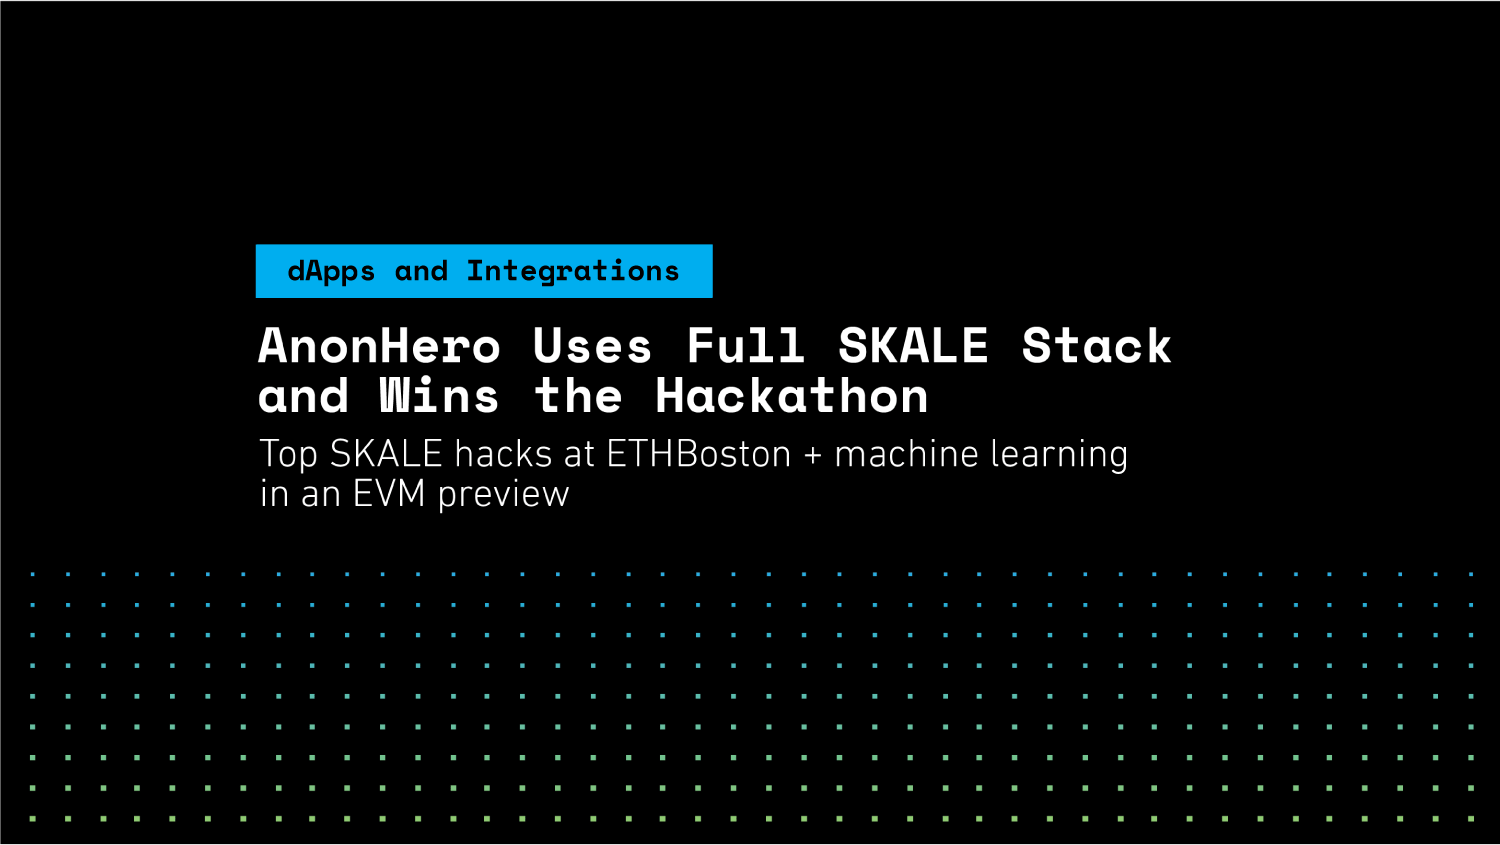 AnonHero Uses Full SKALE Stack and Wins ETHBoston